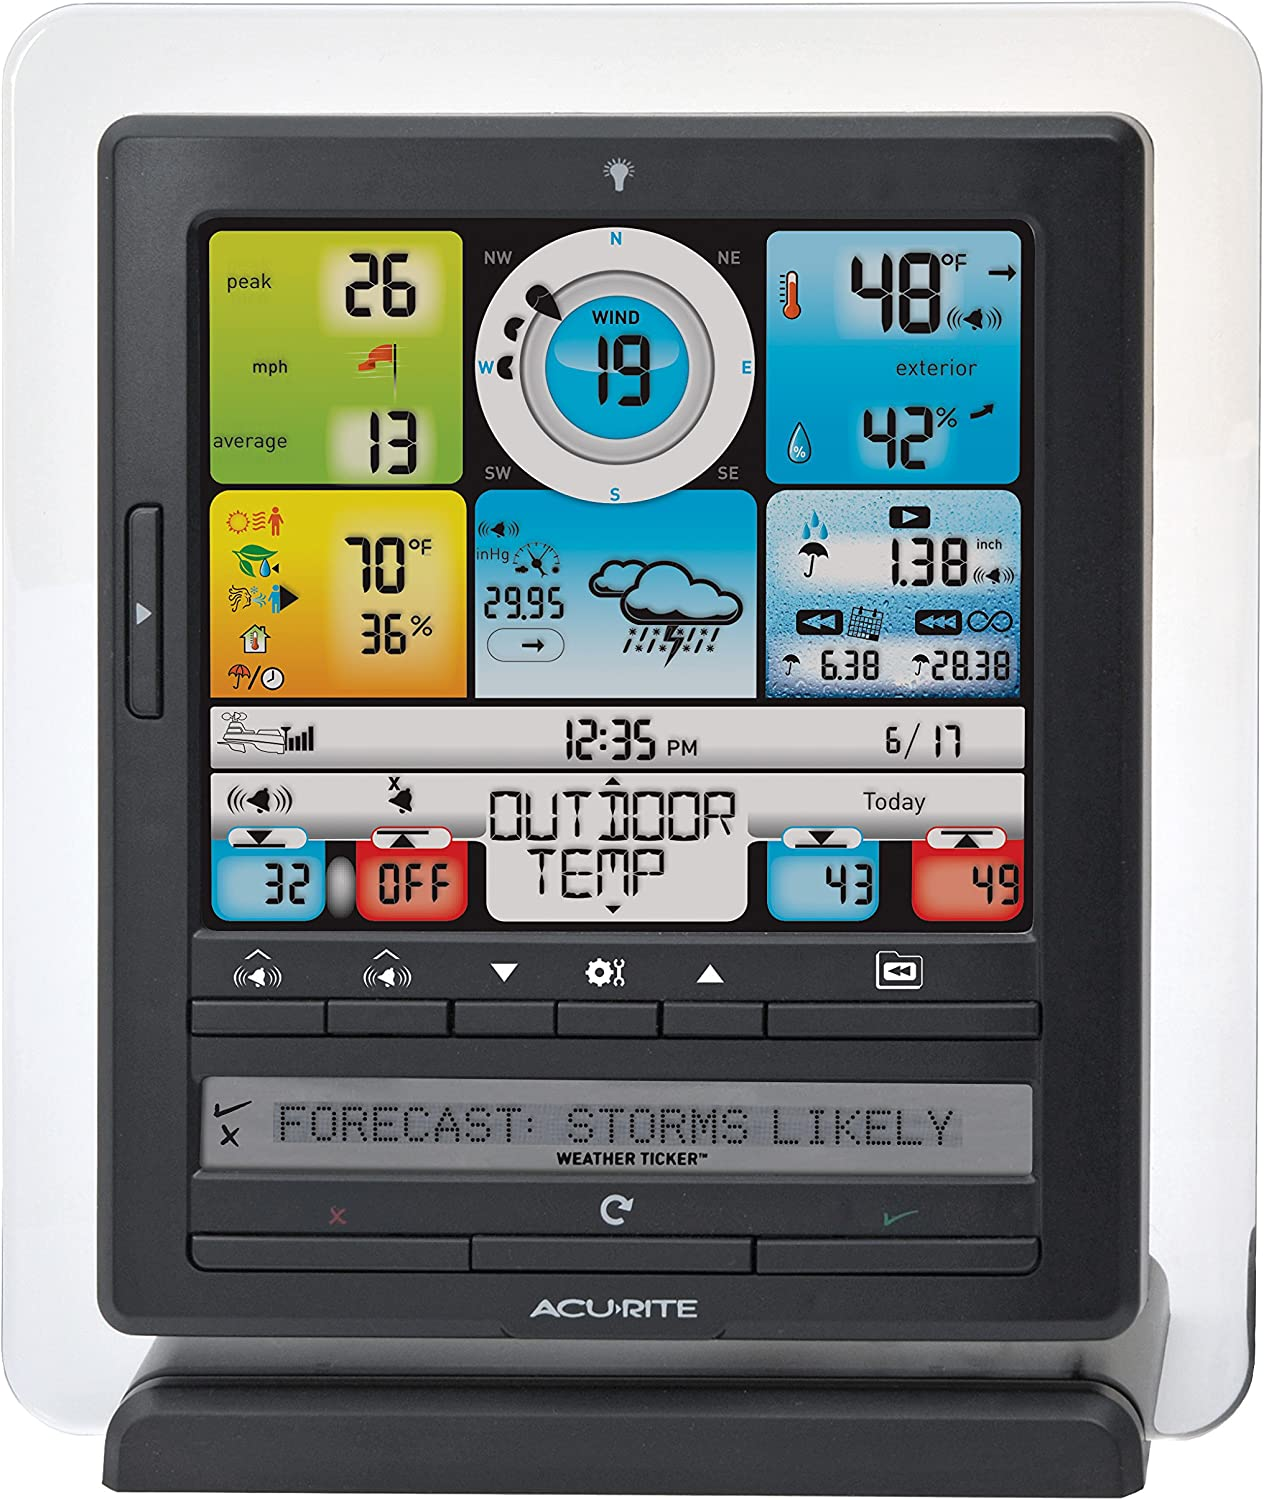 AcuRite Color Display 5-in-1 Weather Sensor